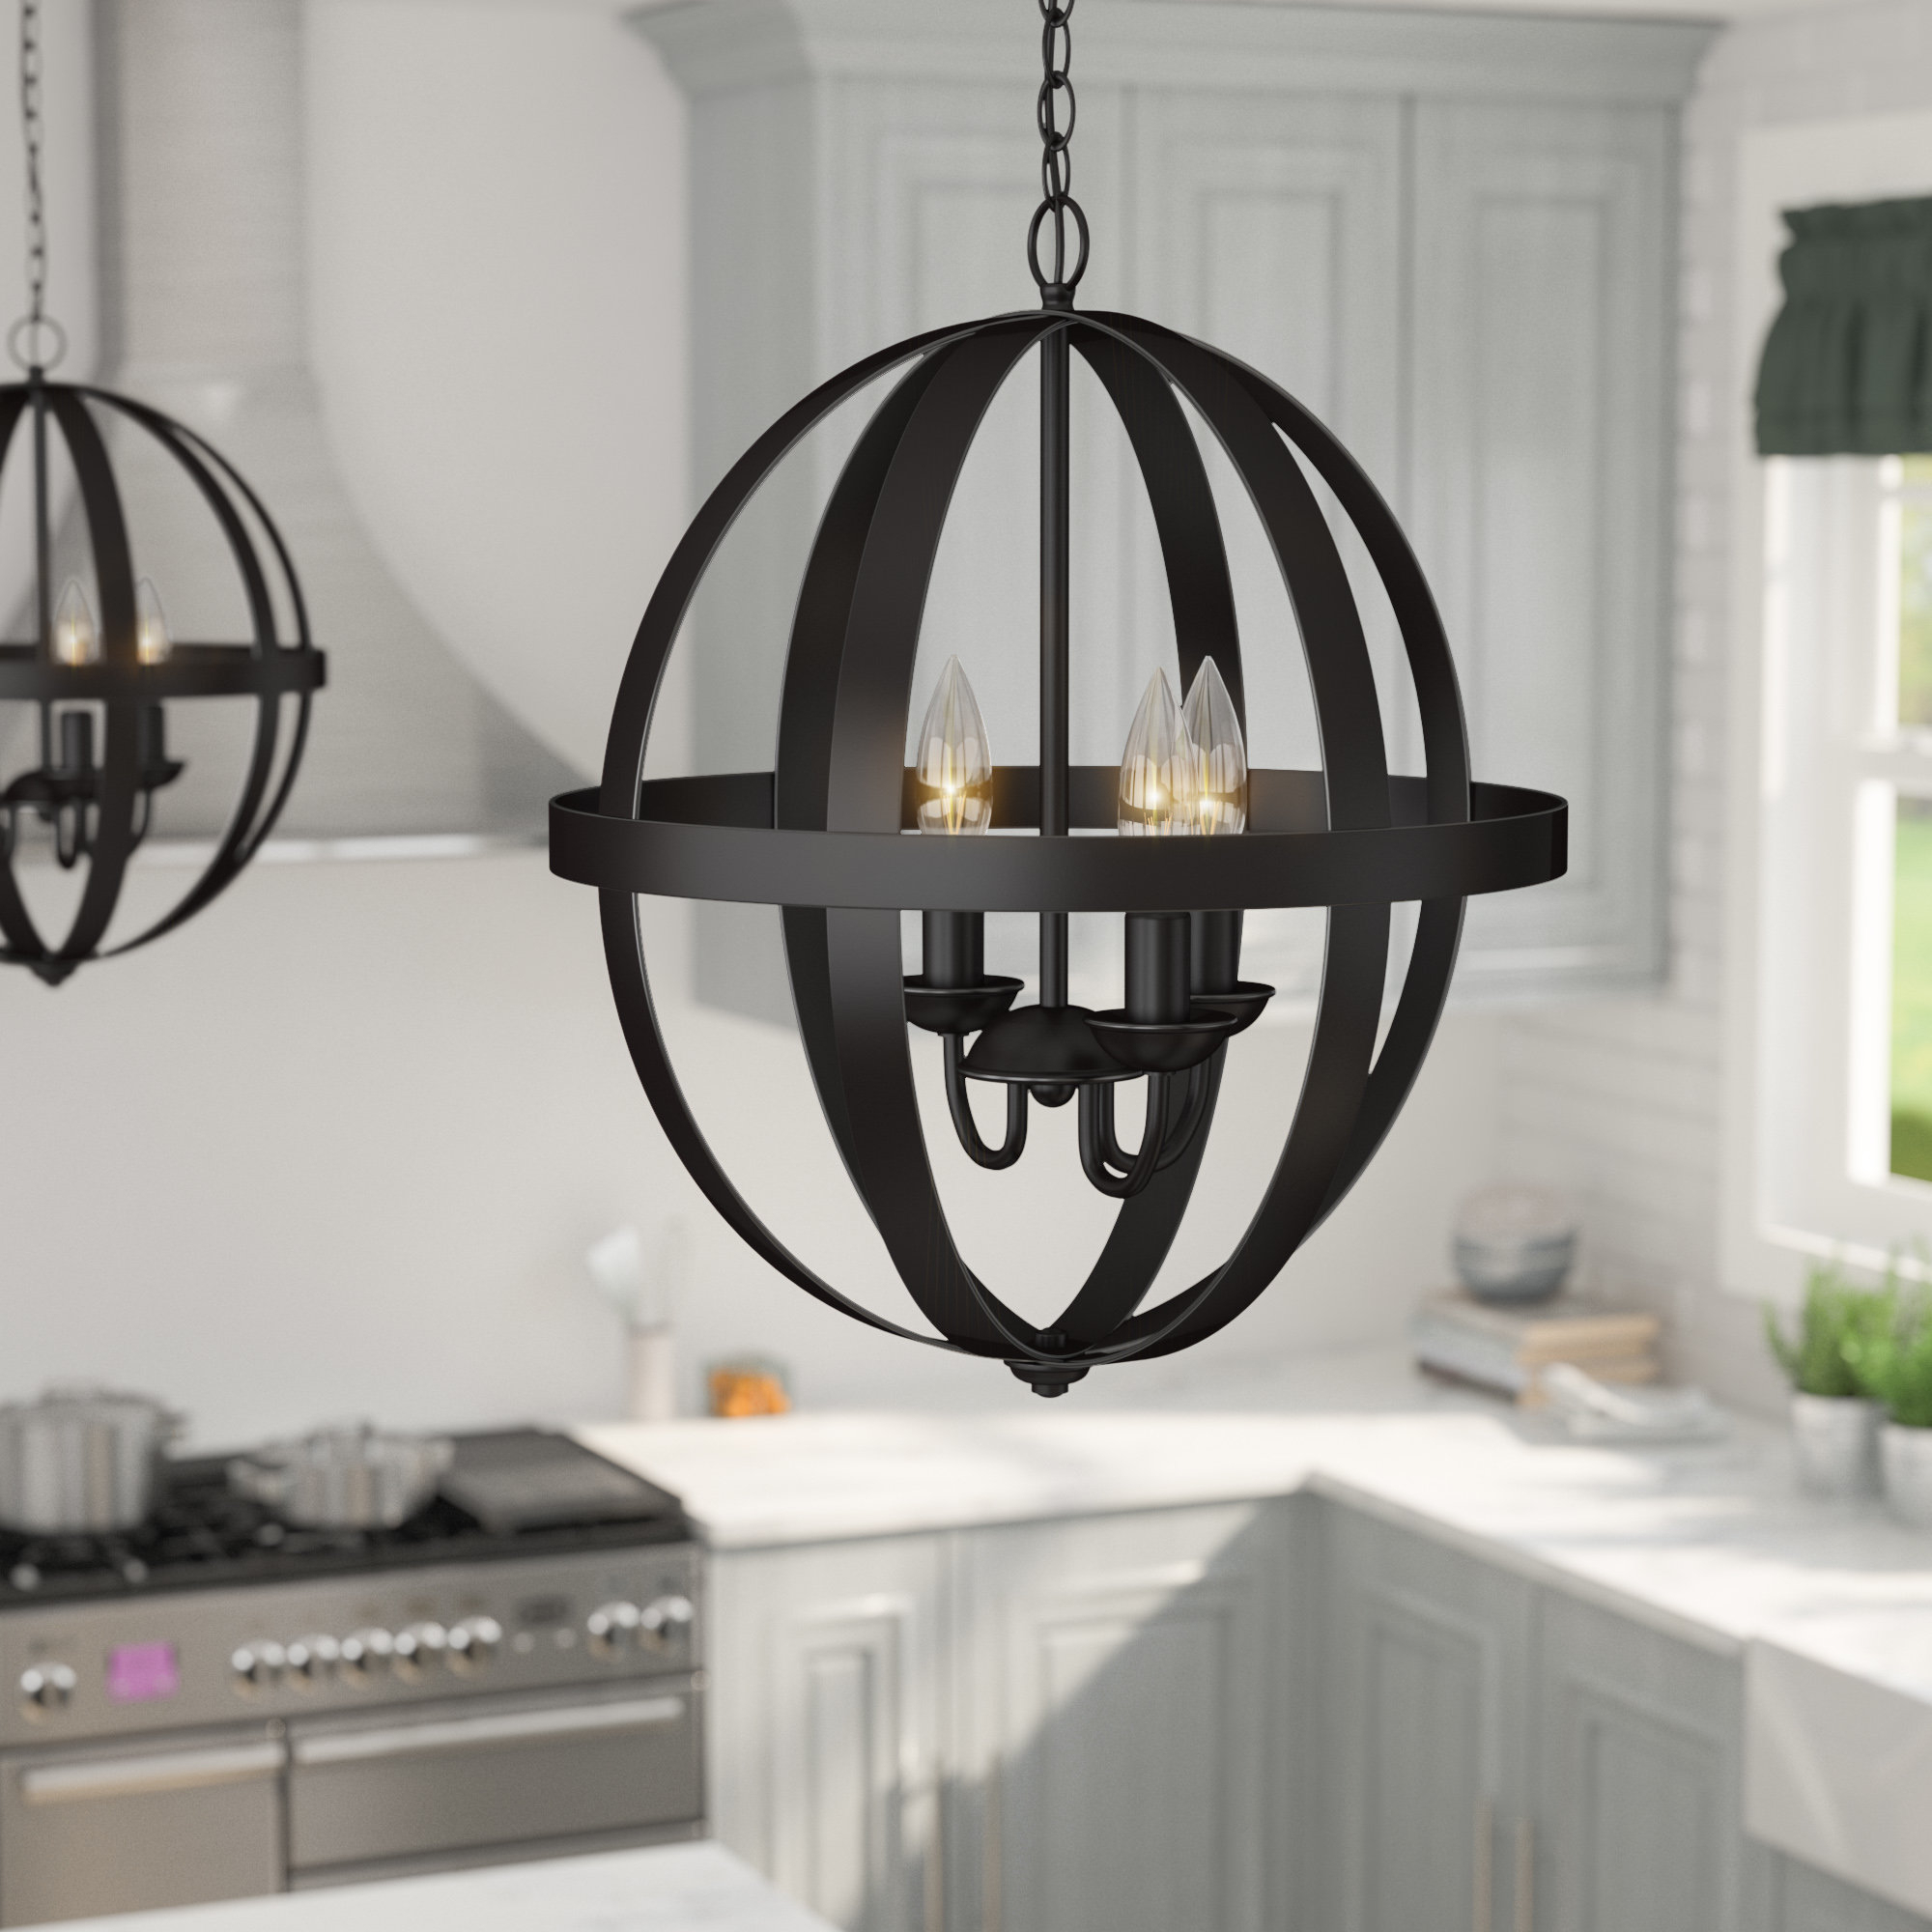 Most Recently Released La Barge 3 Light Globe Chandelier Within Shipststour 3 Light Globe Chandeliers (View 3 of 25)